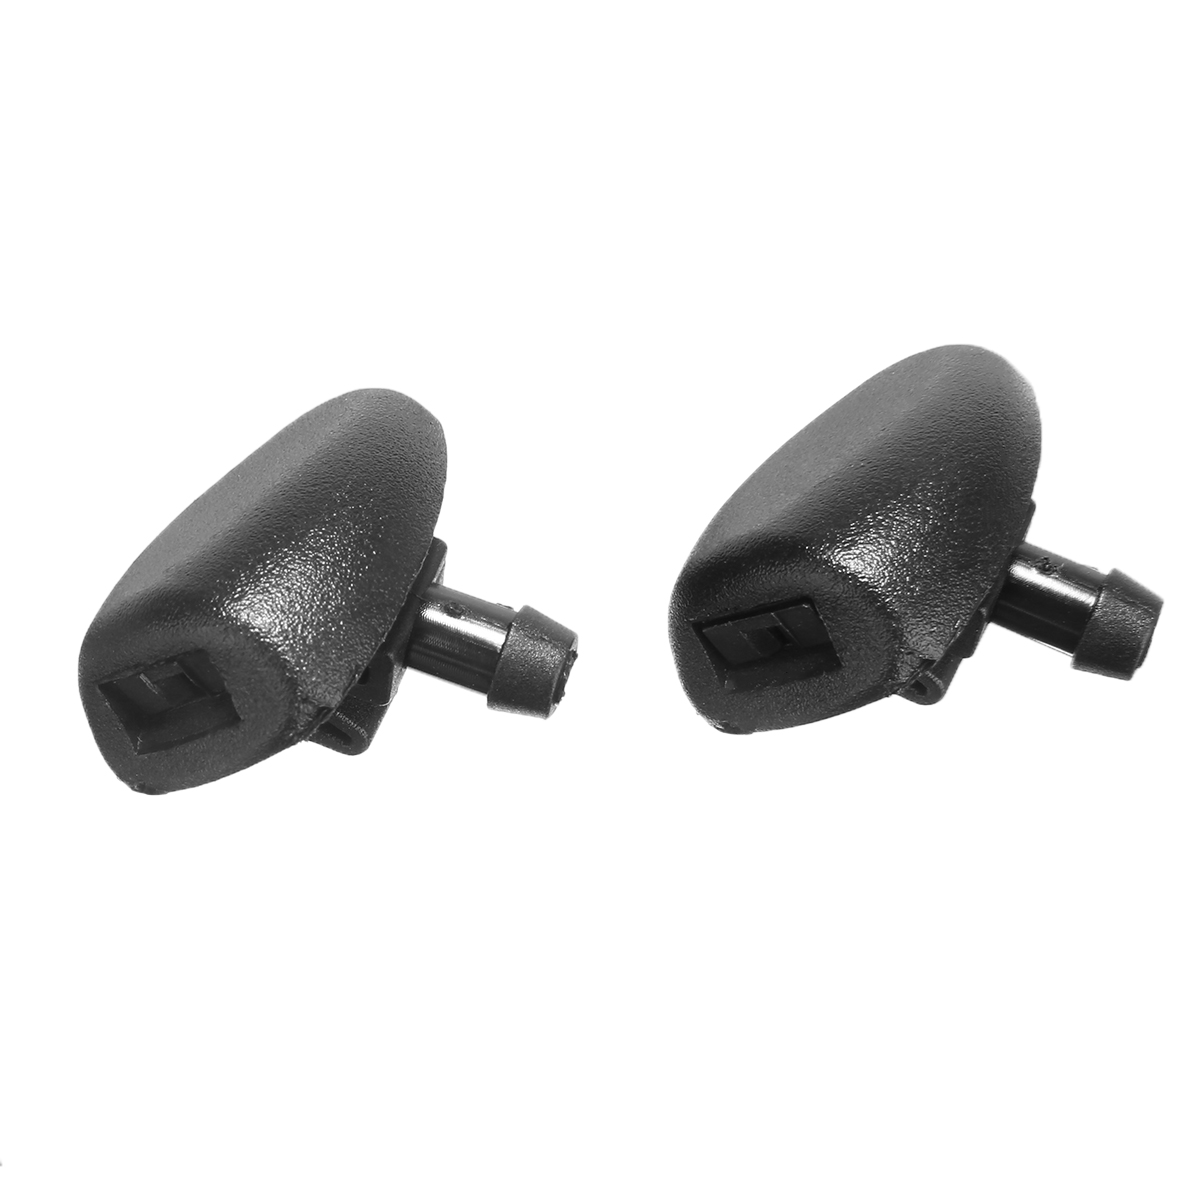 NEW 1 Pair 6438Z1 Windscreen Window Wiper Water Washer Jets Nozzles For Peugeot 407 206